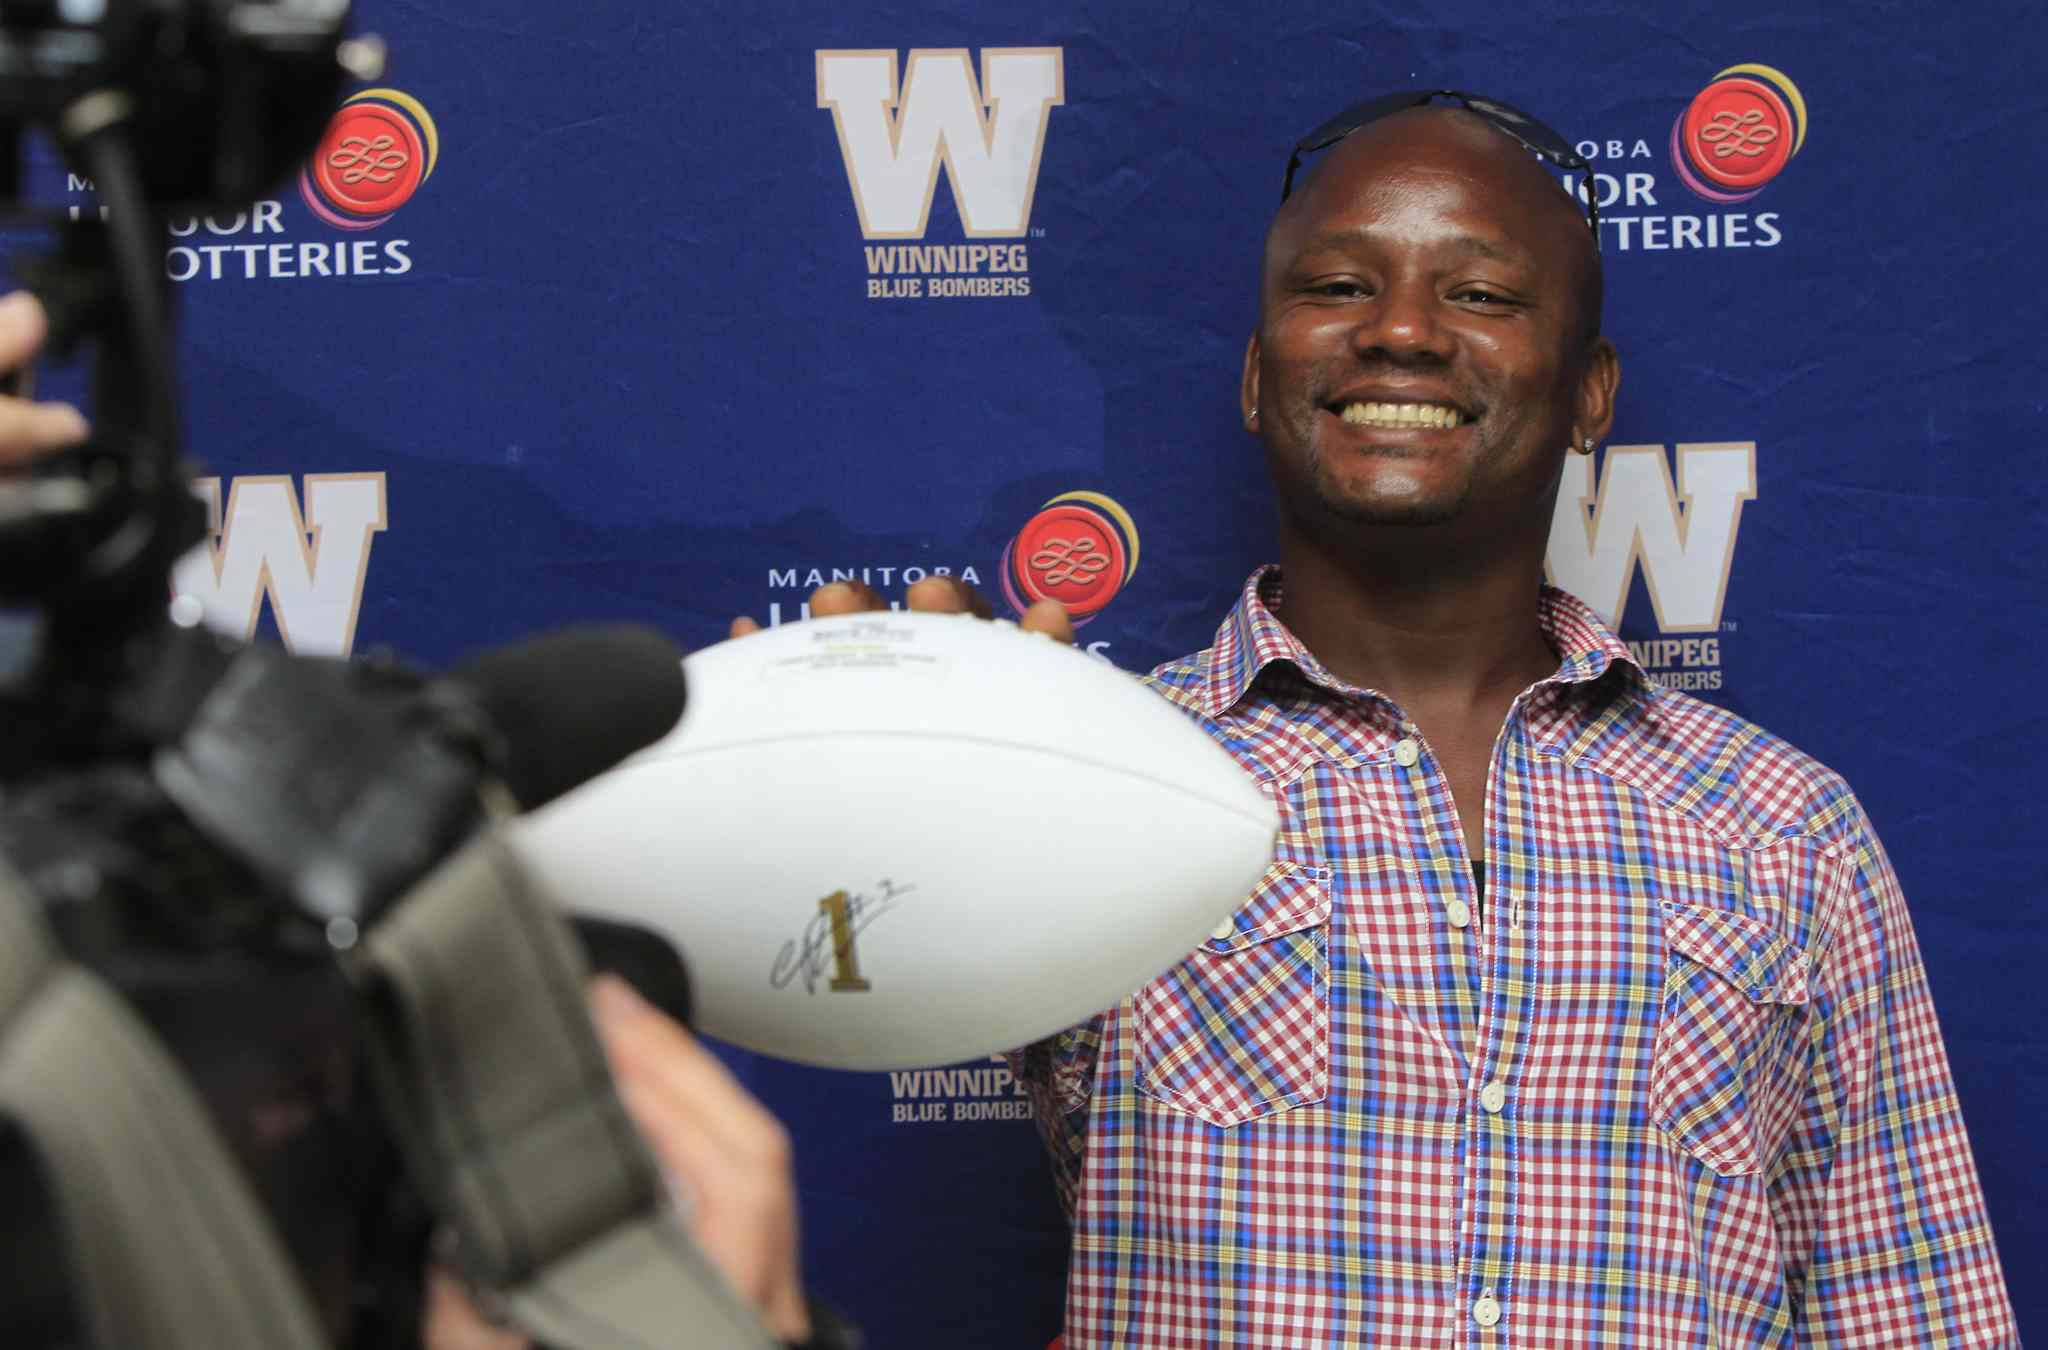 Charles Roberts, who sits fifth on the CFL's career rushing list, was thrilled to be inducted into the Blue Bombers' Hall of Fame.